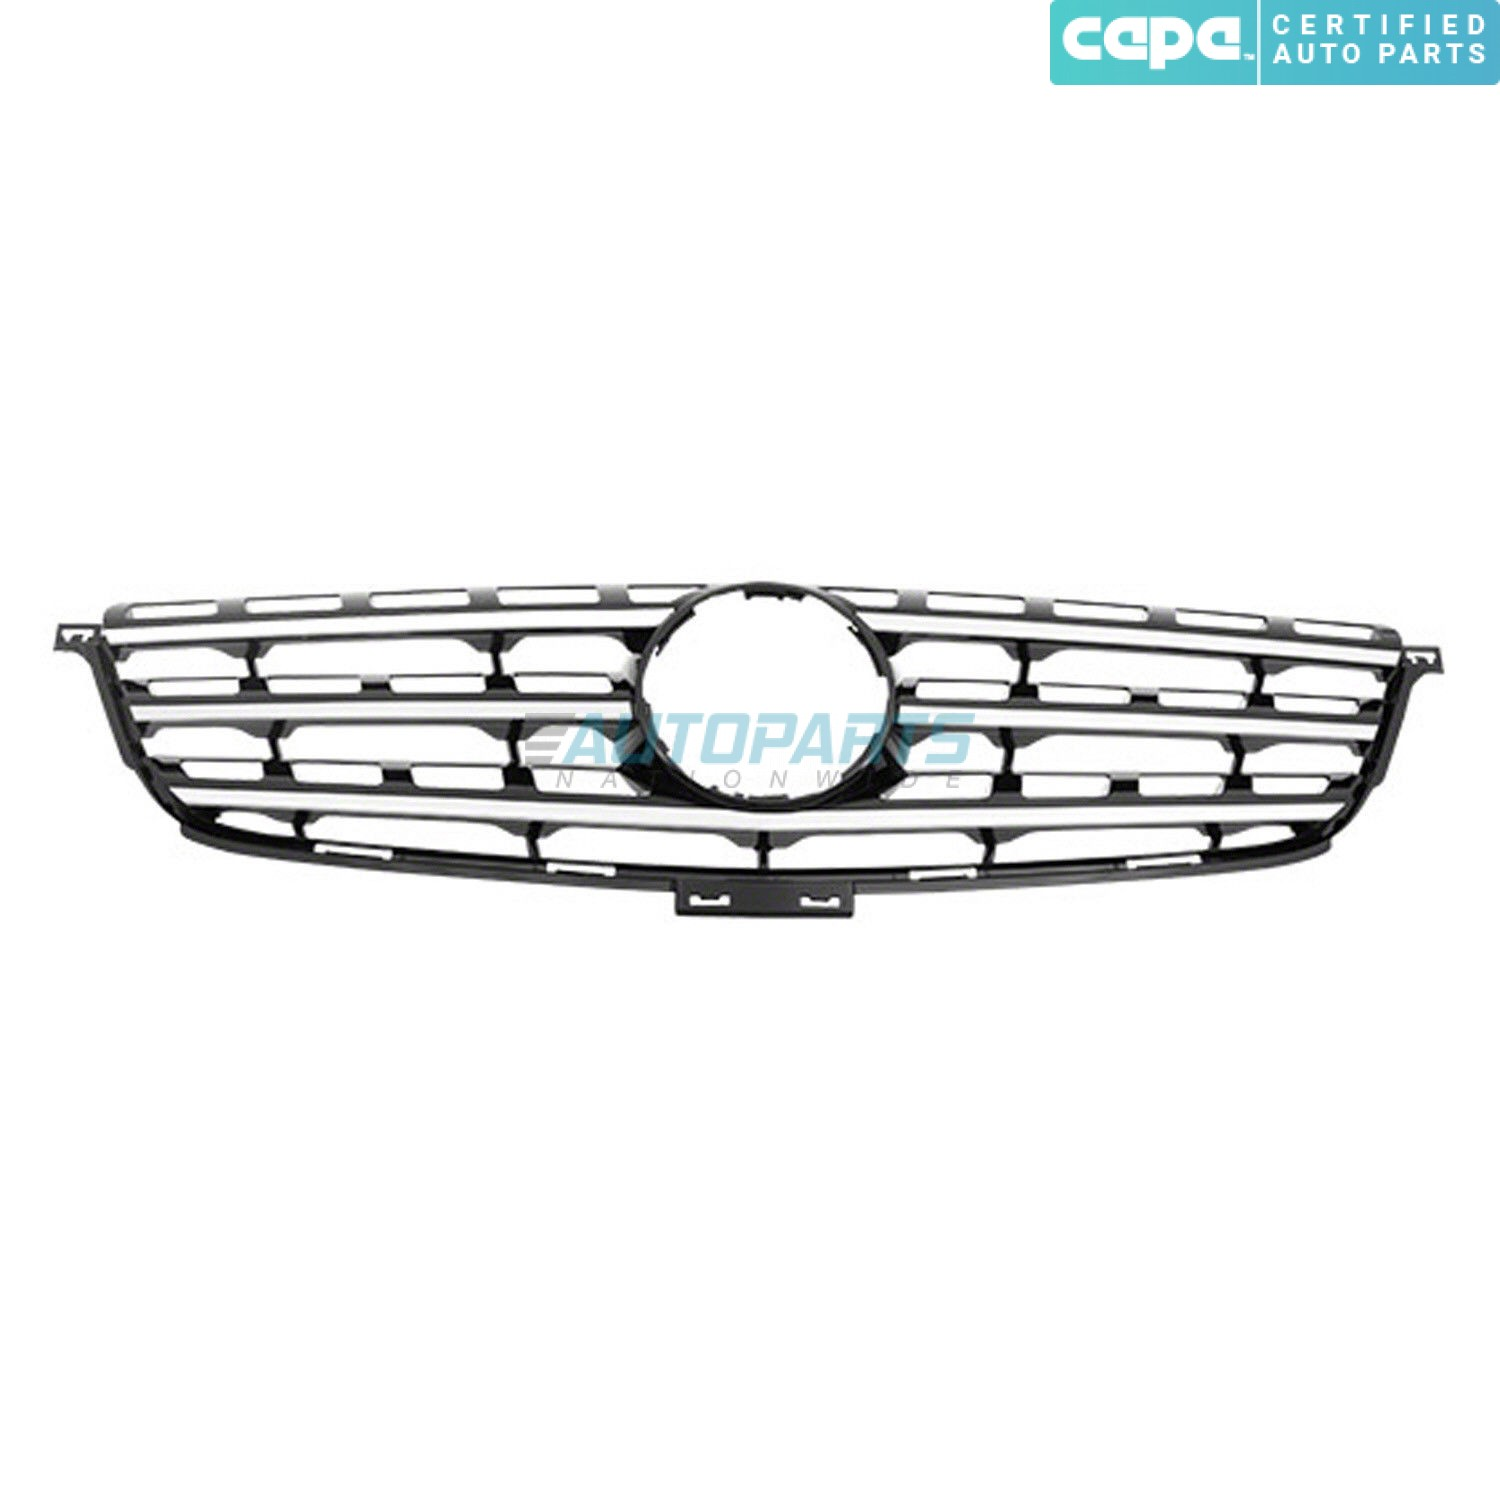 New Grille Assembly RH Side for Mercedes-Benz CLS550 MB1039136 2012 to 2015